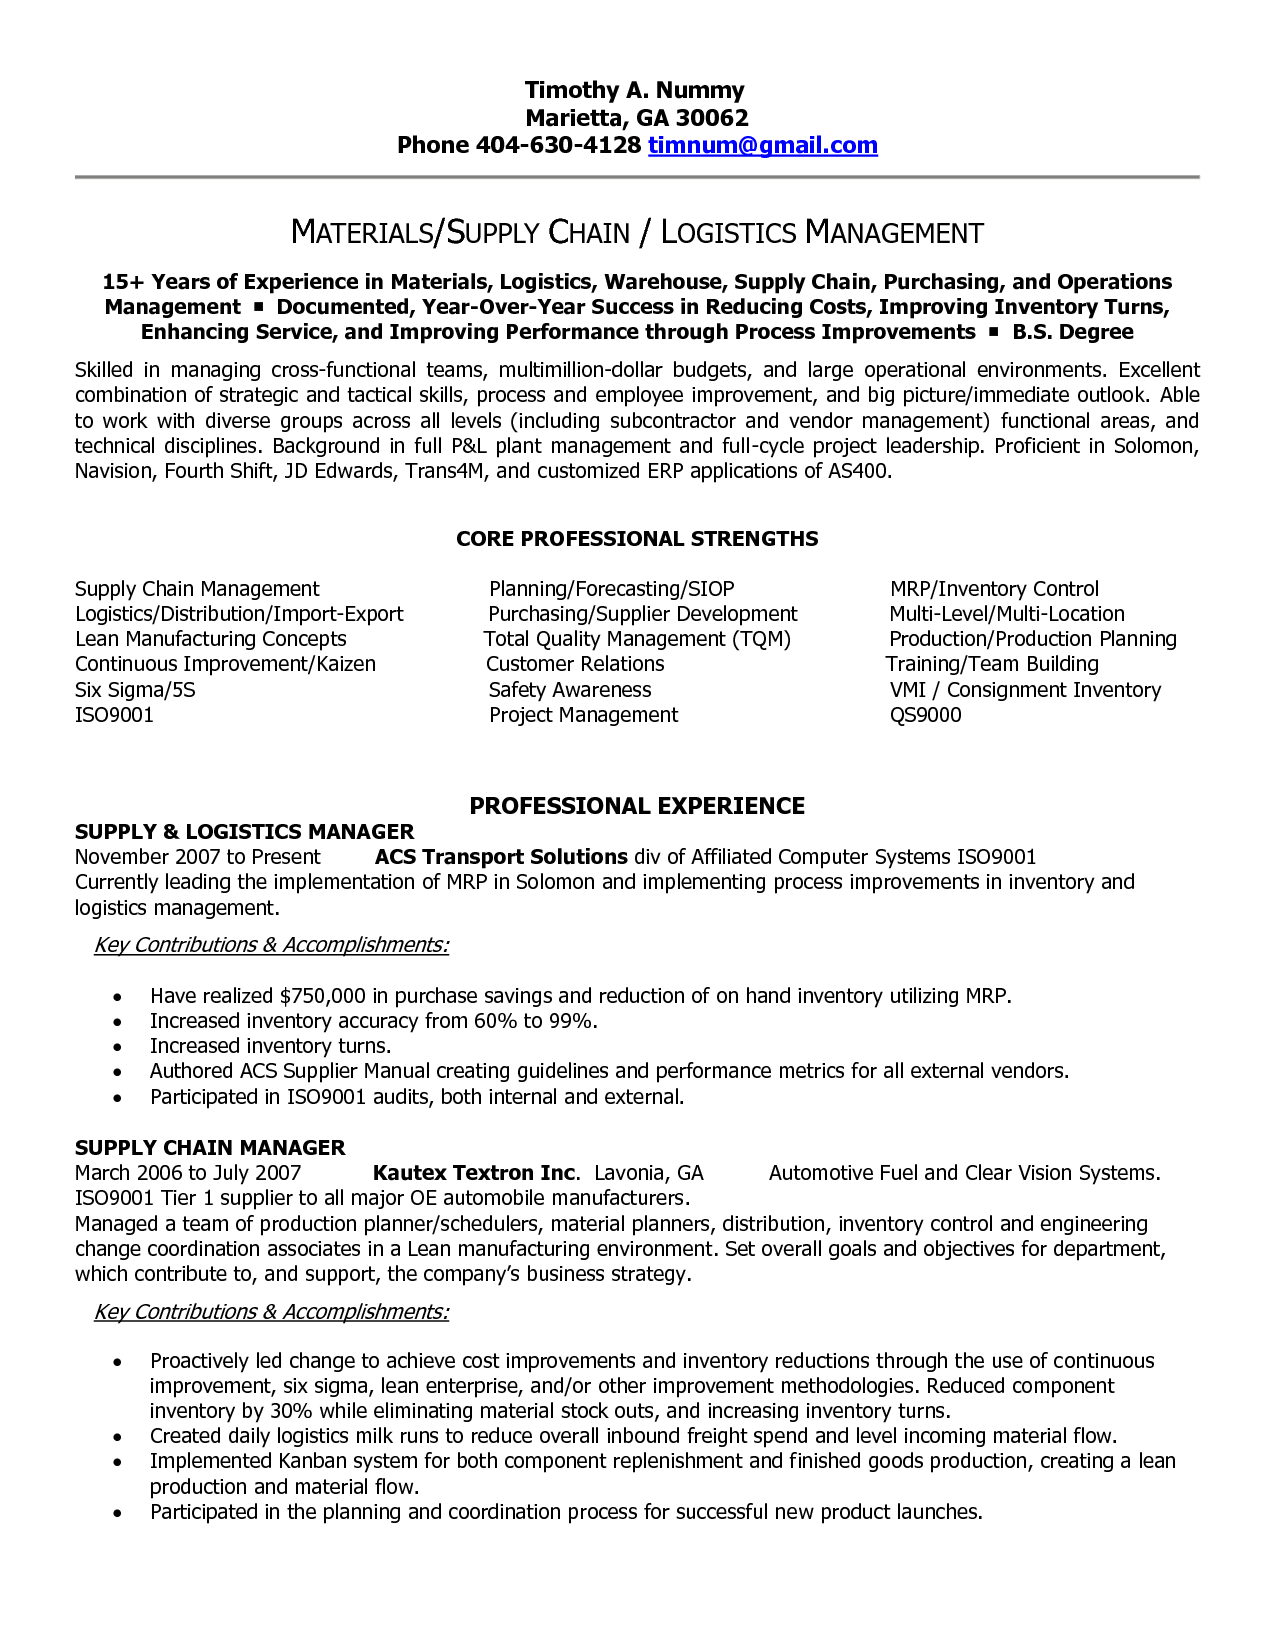 Buyer Manager Resume Purchasing Manager Resume Template By Sampleresume In  Procurement Inventory Specialist Resume General Labor